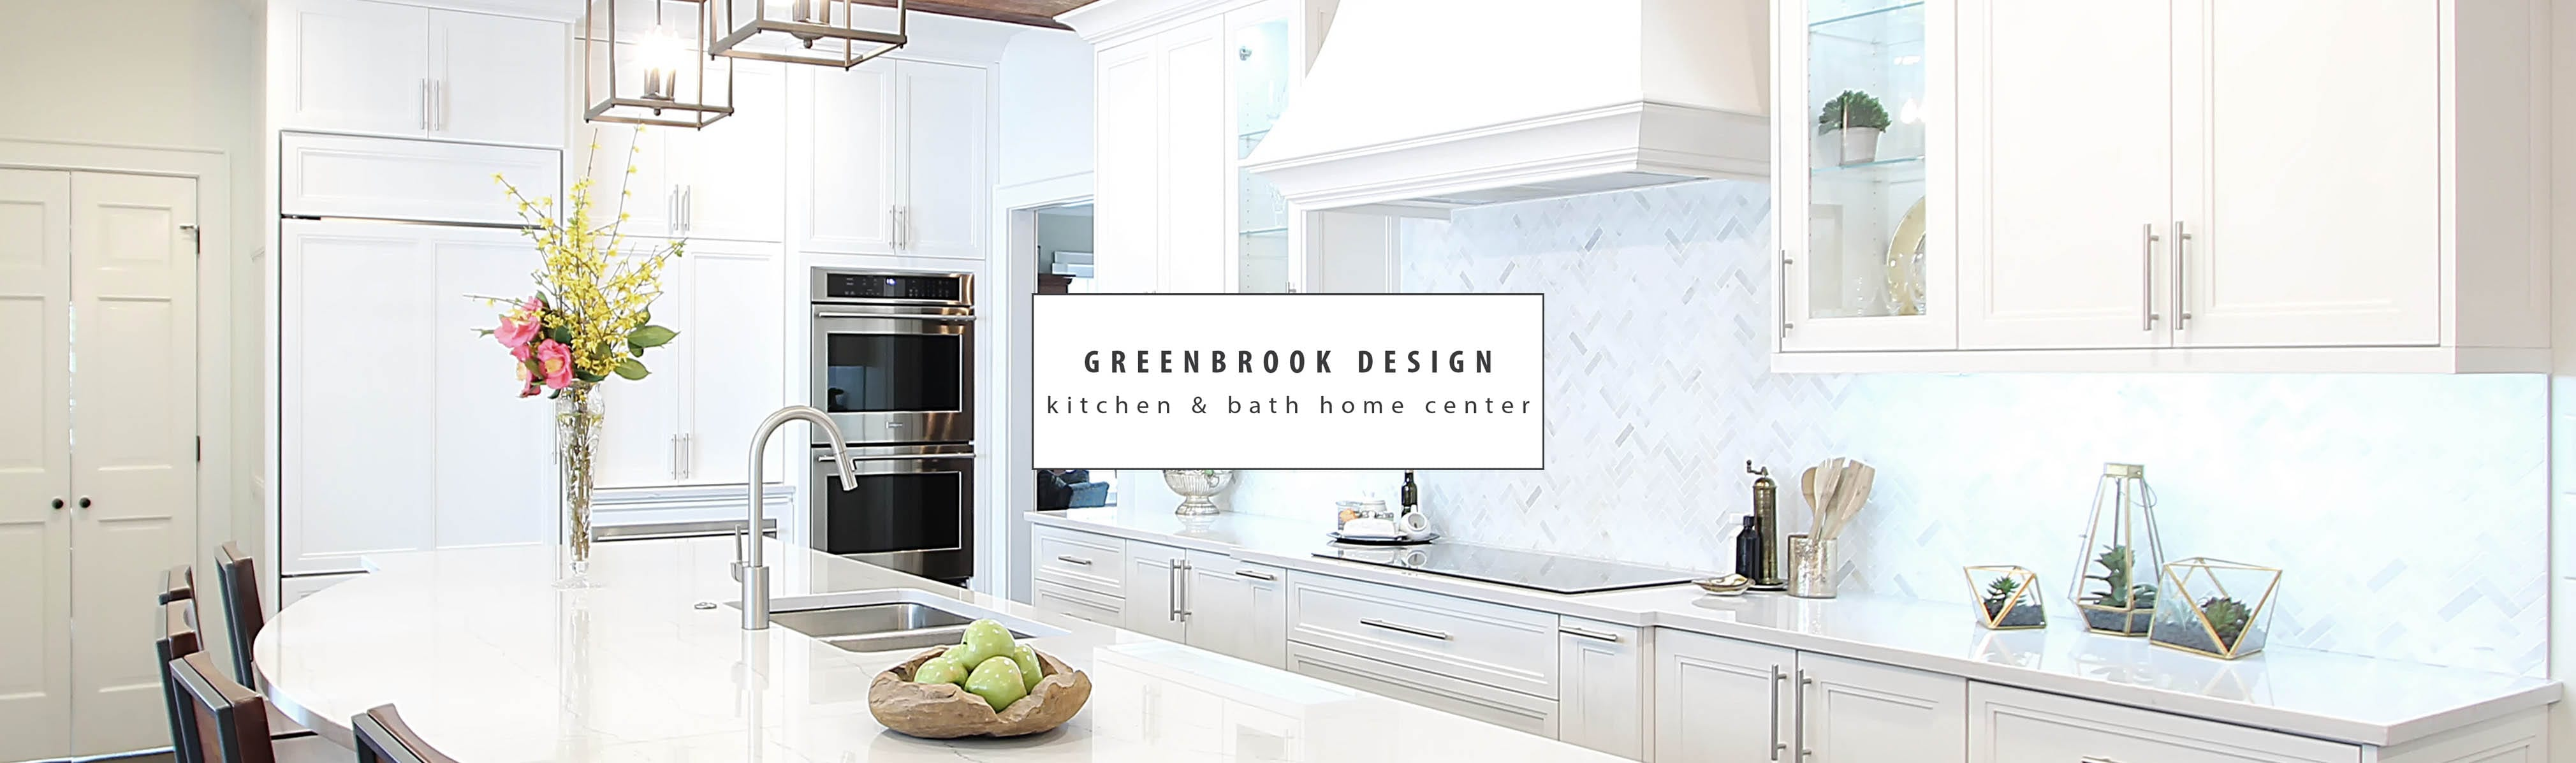 Kitchen Design Center Greenbrook Greenbrook Design Center